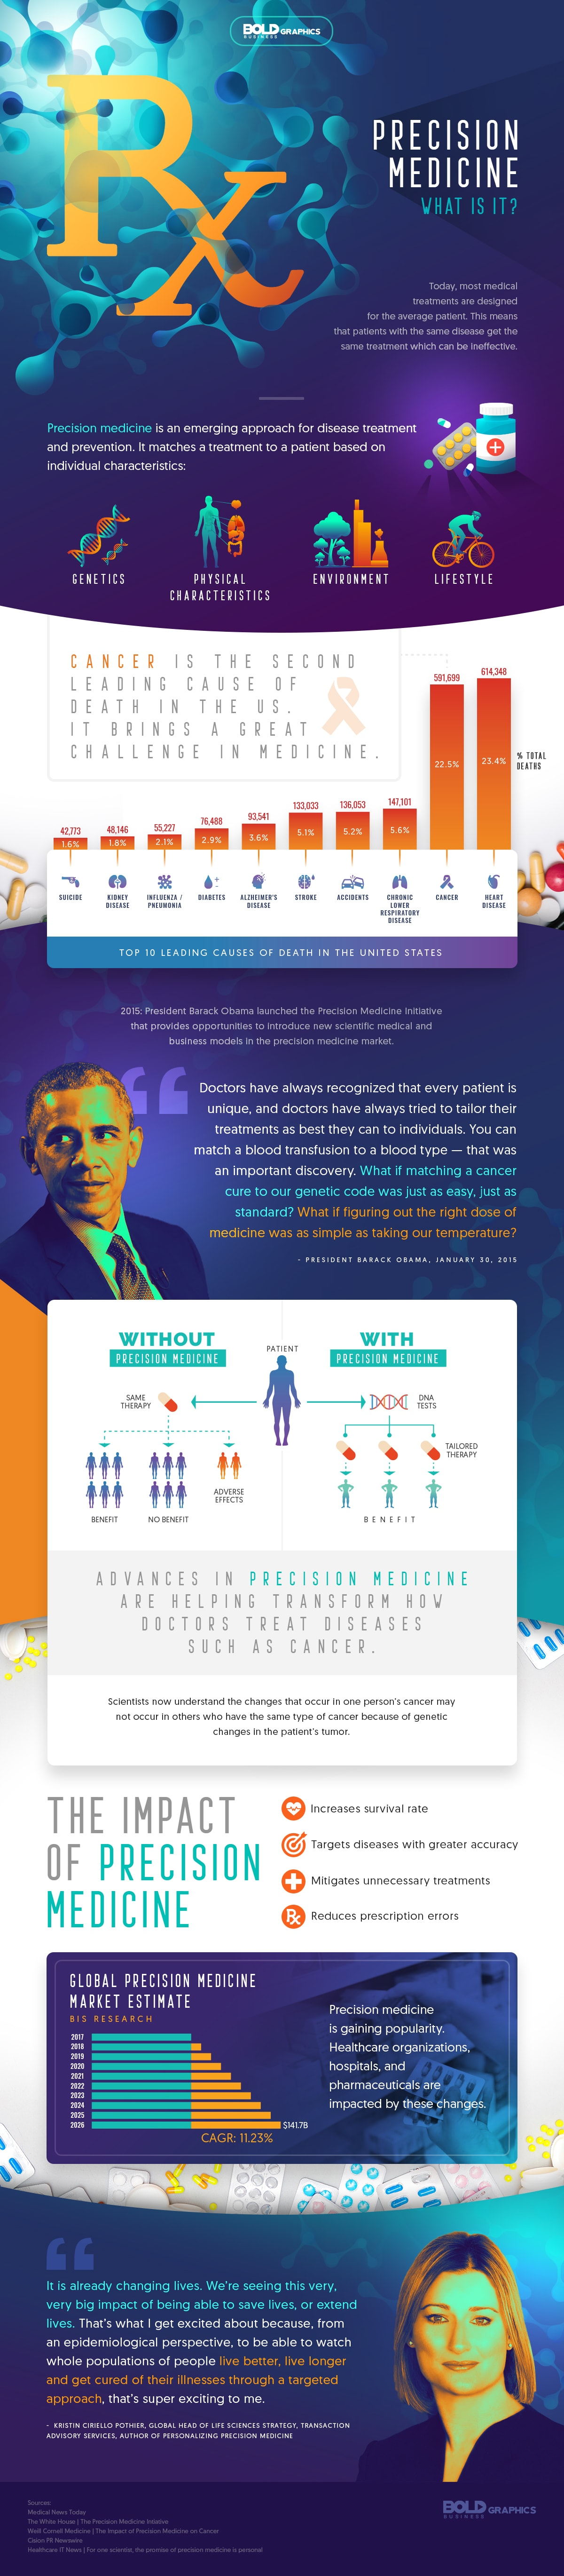 precision medicine,precision medicine initiative,precision medicine initiative,precision medicine definition,precision medicine cancer,precision medicine group,precision medicine and its uses,precision medicine initiative obama,what is precision medicine,precision medicine impacts